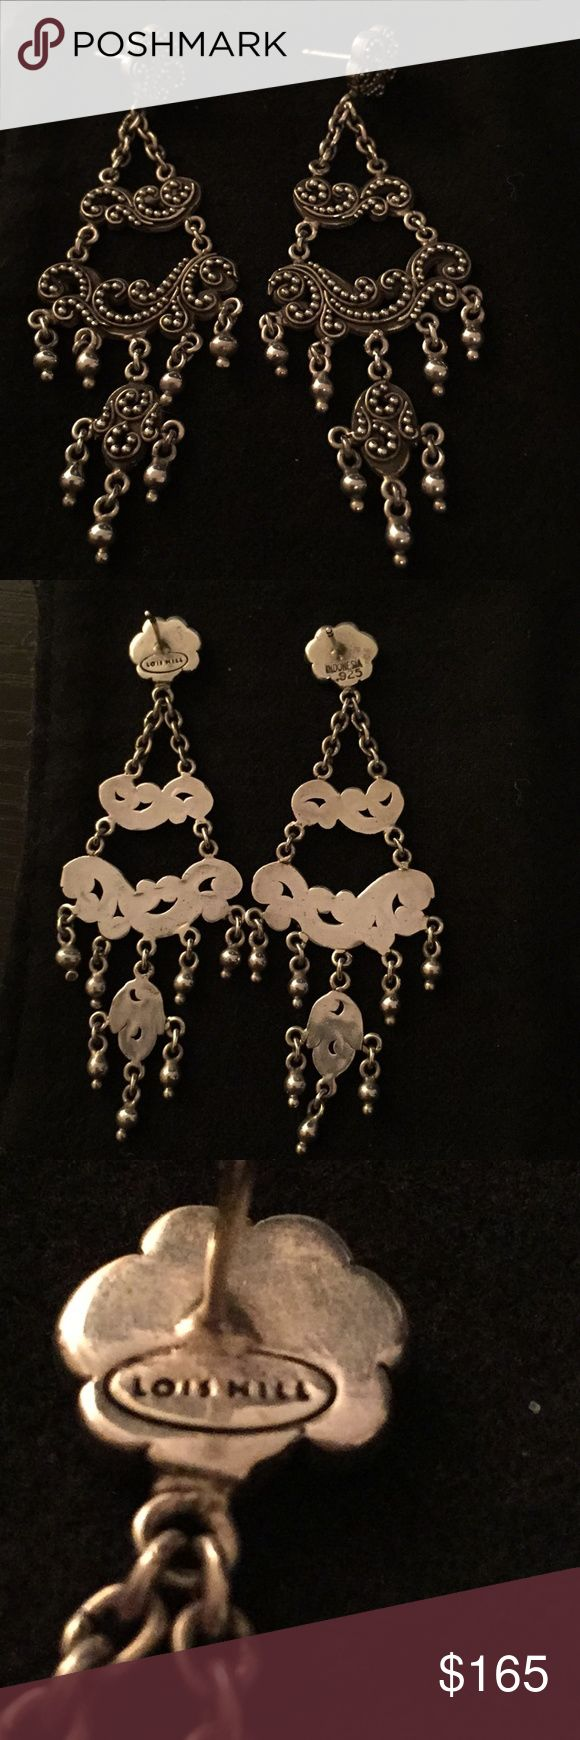 Lois Hill Tiered Drop Sterling Silver Earrings These Lois Hill sterling silver earrings are so beautiful! Almost three inches long, they make a statement! Lois Hill Jewelry Earrings